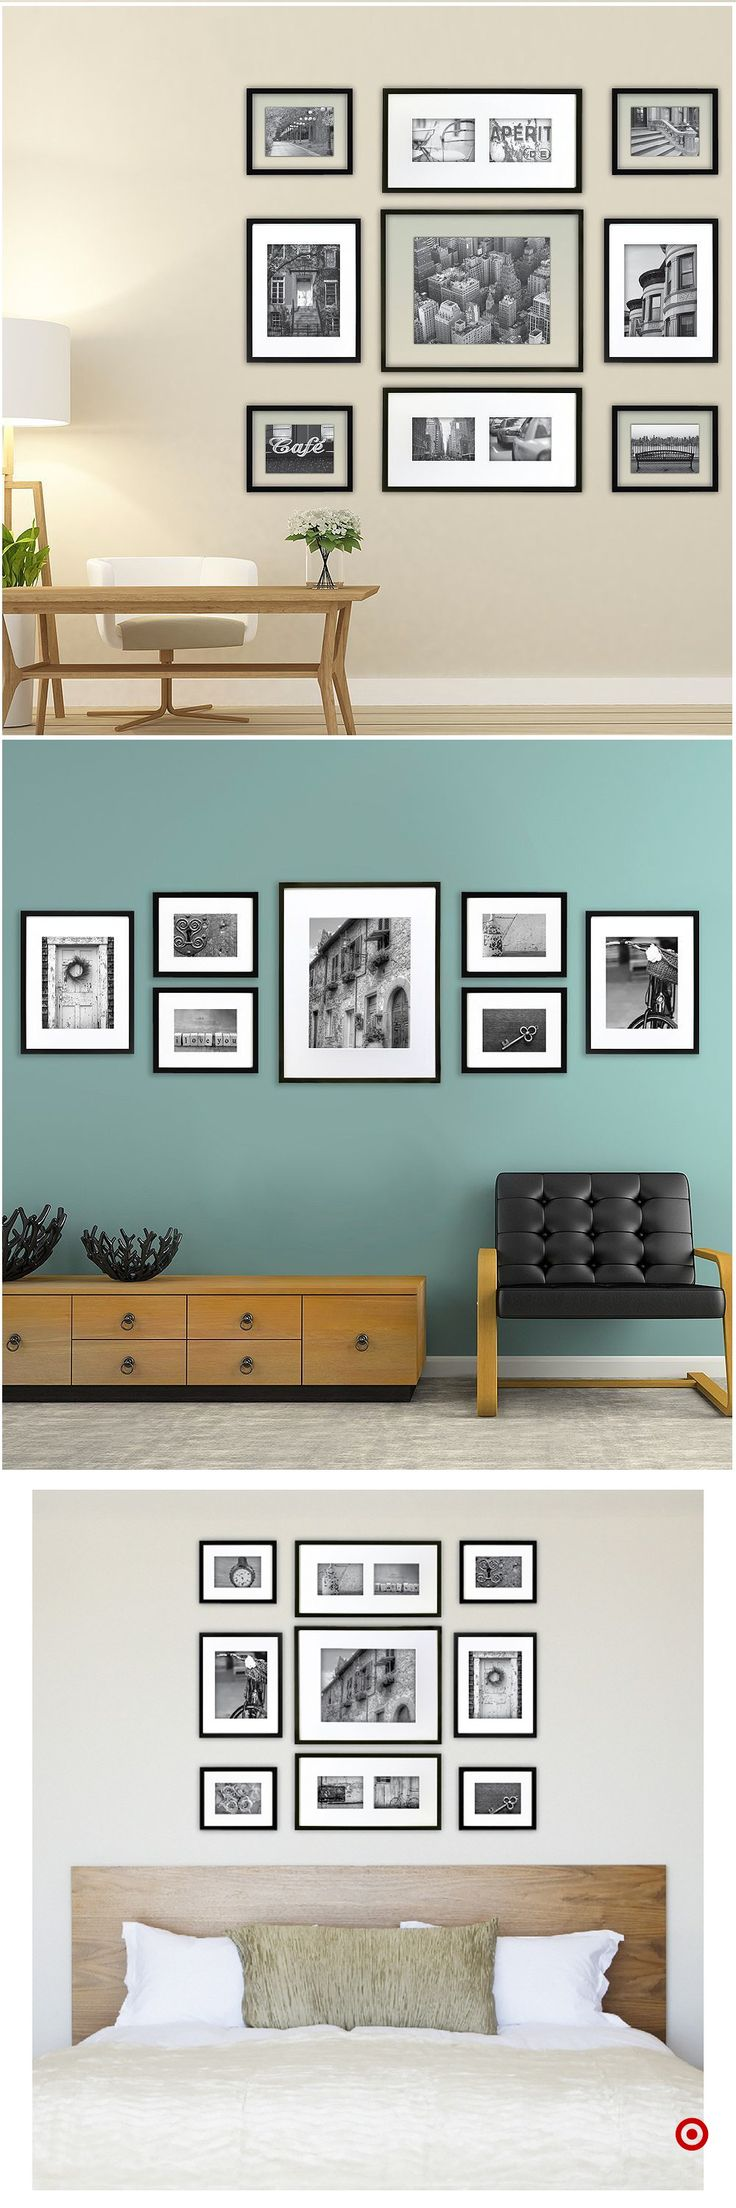 Best 25 gallery wall frame set ideas on pinterest gallery frame best 25 gallery wall frame set ideas on pinterest gallery frame set picture frame sets and gallery wall layout jeuxipadfo Image collections